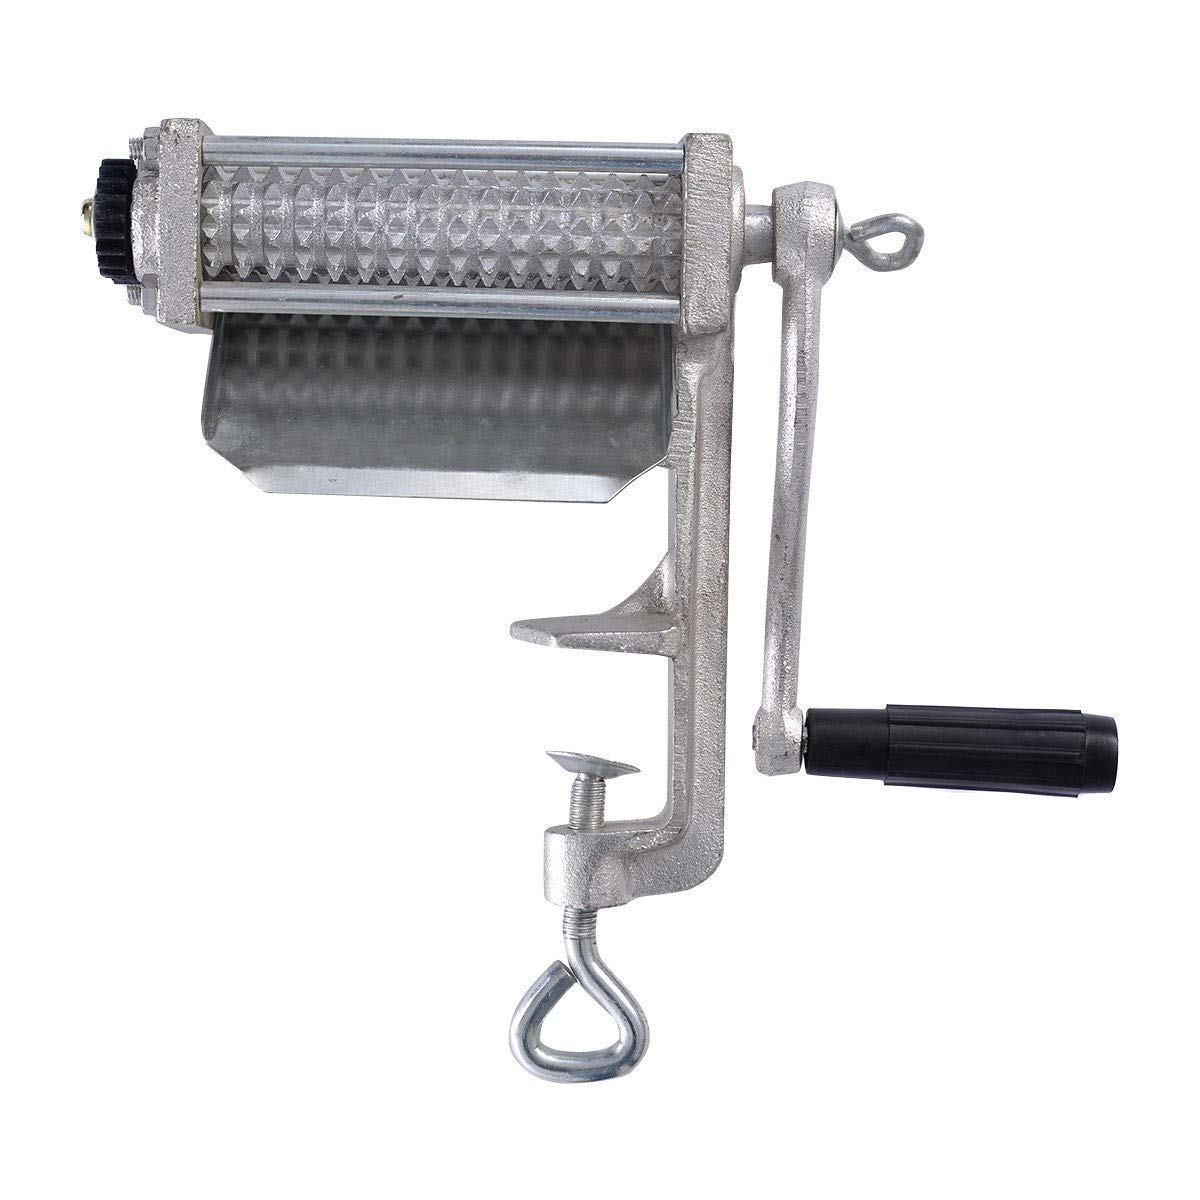 BeUniqueToday Heavy Duty Meat Tenderizer Cuber, Heavy Duty And Durable Cast Iron Construction Meat Tenderizer Cuber, Meat Tenderizer Heavy Duty Cuber Kitchen Tools, Meat Tenderizer With Spike Rollers